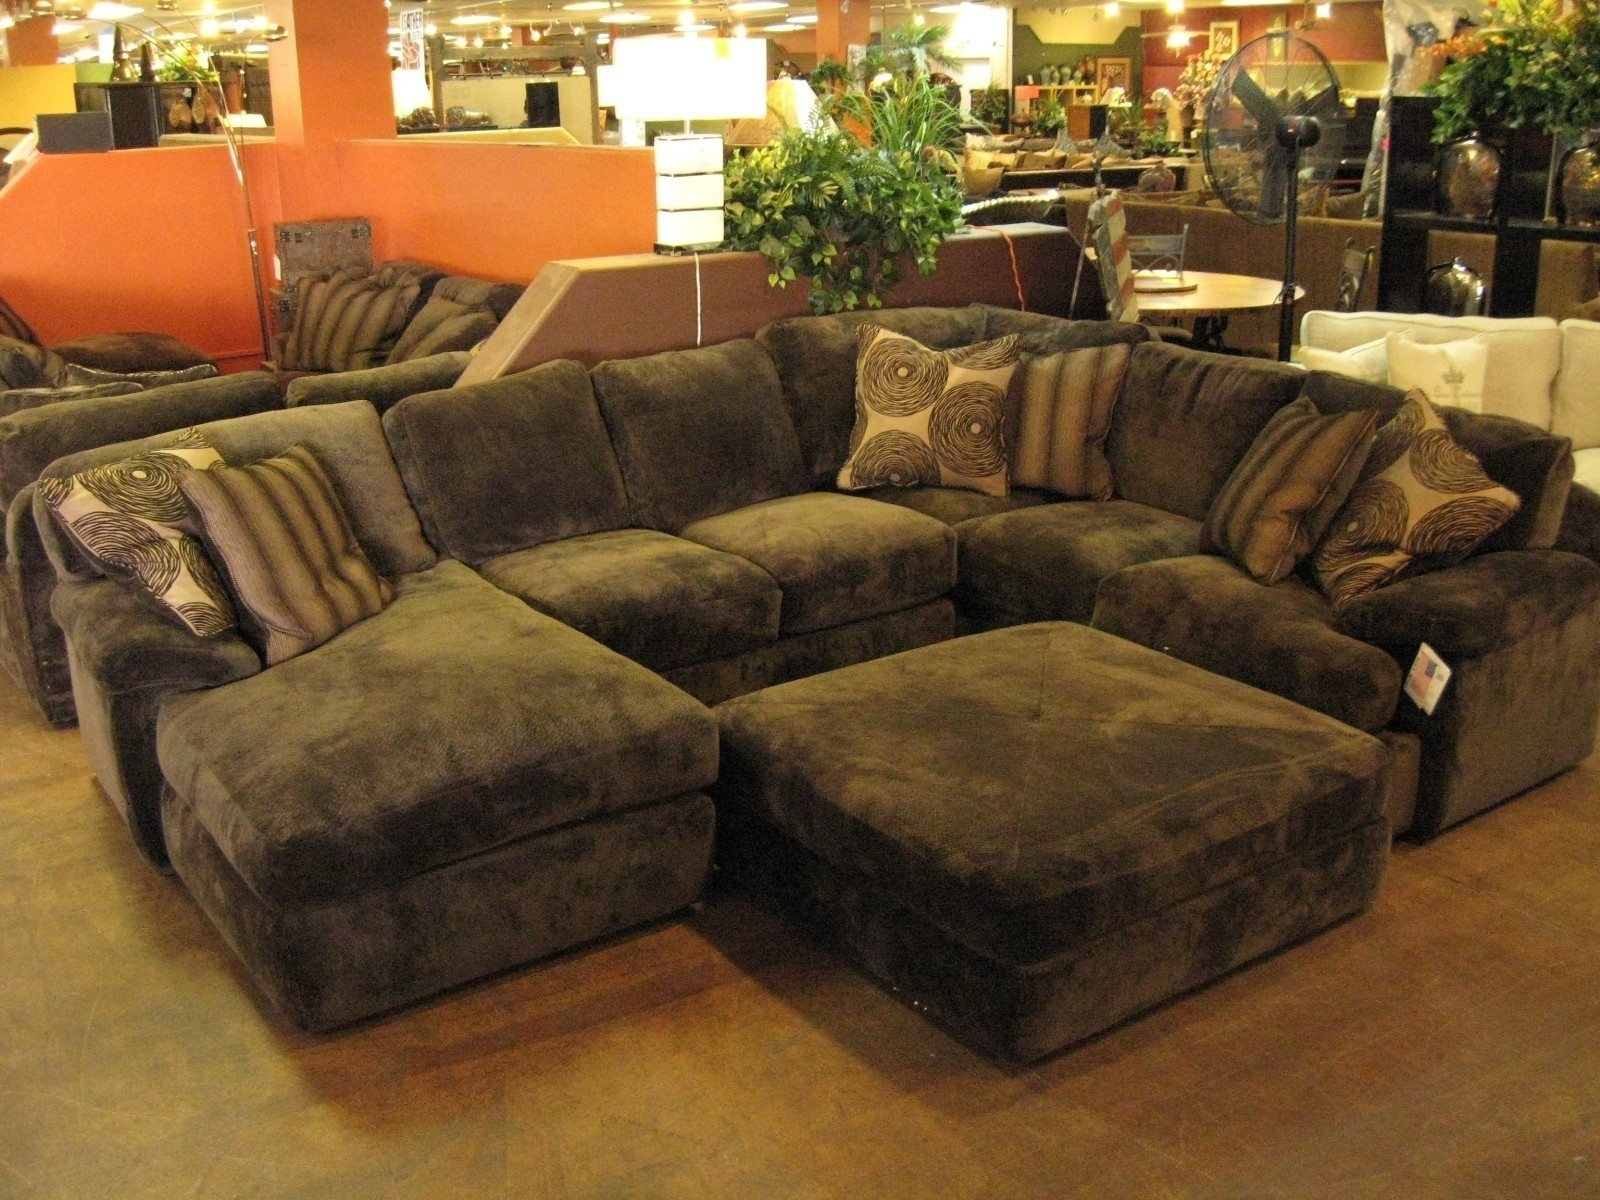 Stylish Sectional Sofa With Oversized Ottoman – Mediasupload For Leather Sectionals With Ottoman (View 6 of 10)